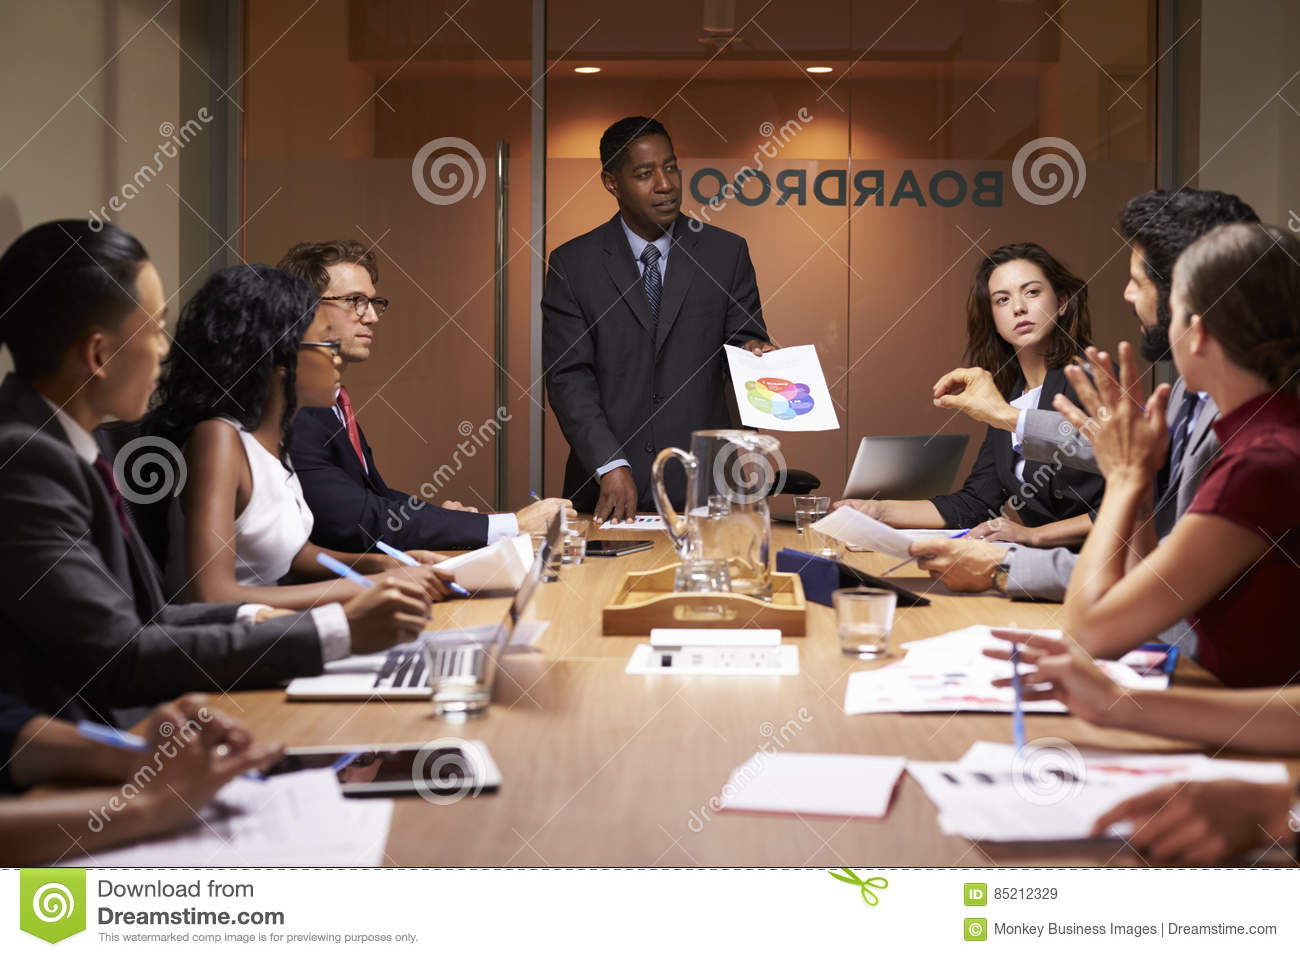 Black businessman stands to present to colleagues at meeting